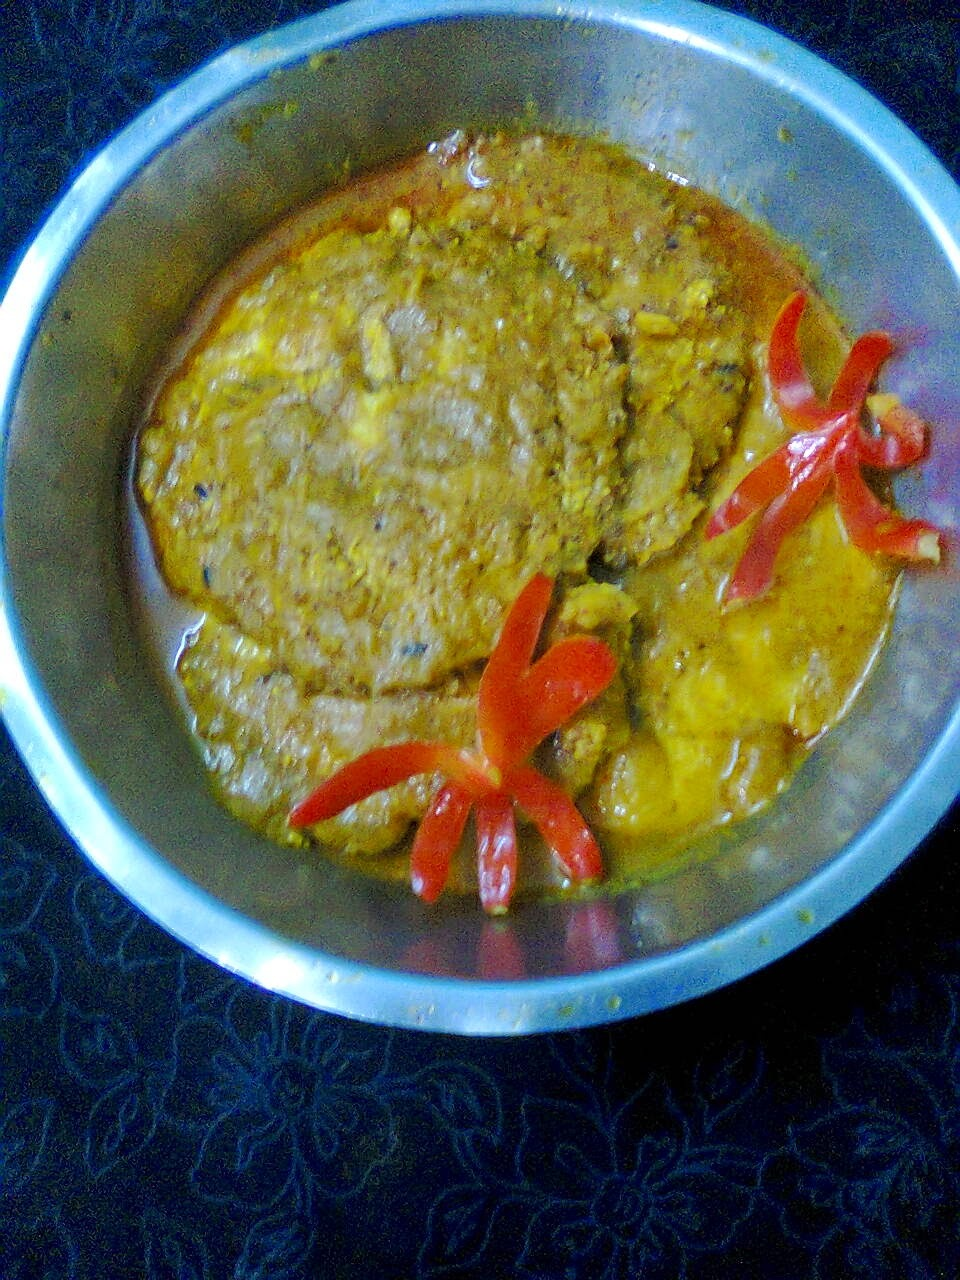 rohu fish egg